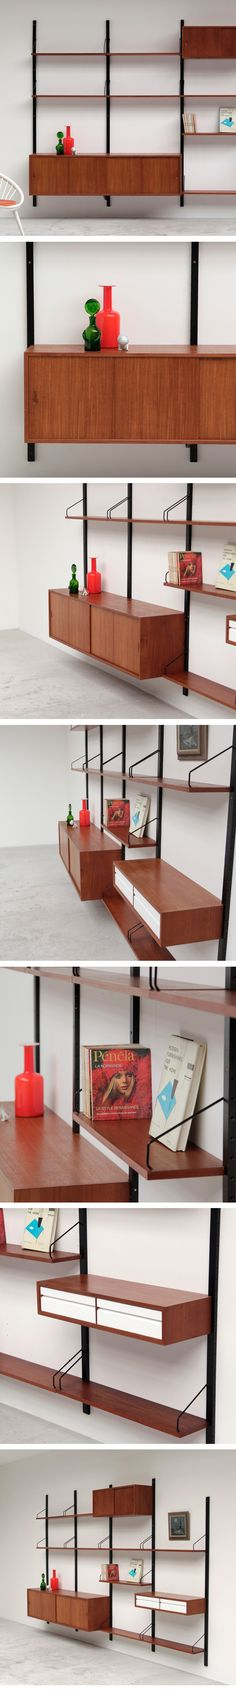 Poul Cadovius, Royal System, wall unit, danish